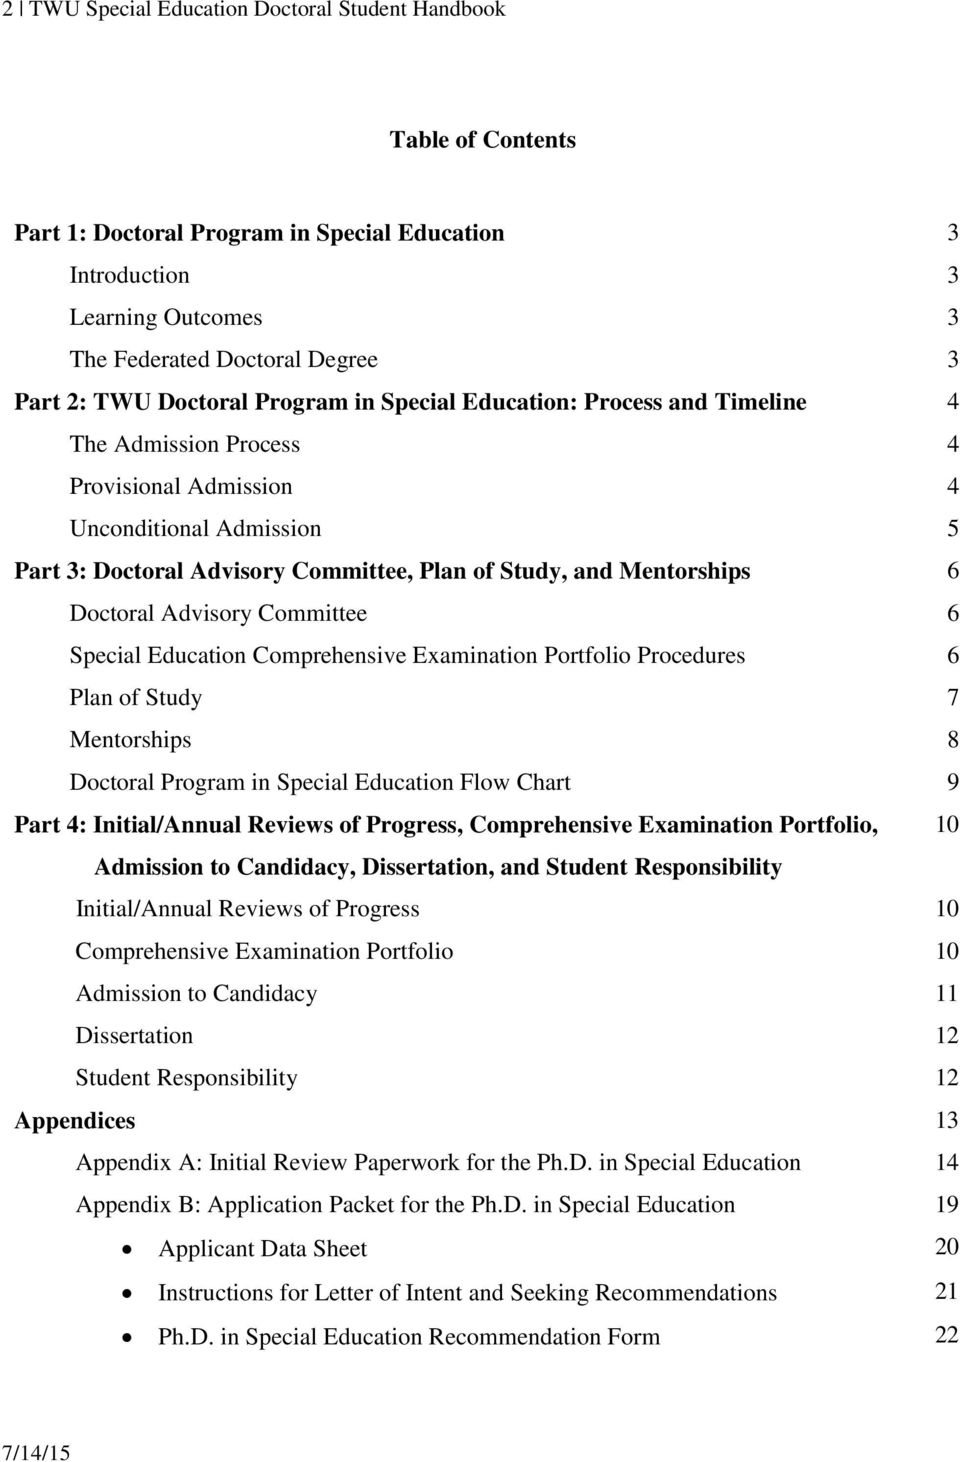 Mentorships 6 Doctoral Advisory Committee 6 Special Education Comprehensive Examination Portfolio Procedures 6 Plan of Study 7 Mentorships 8 Doctoral Program in Special Education Flow Chart 9 Part 4: